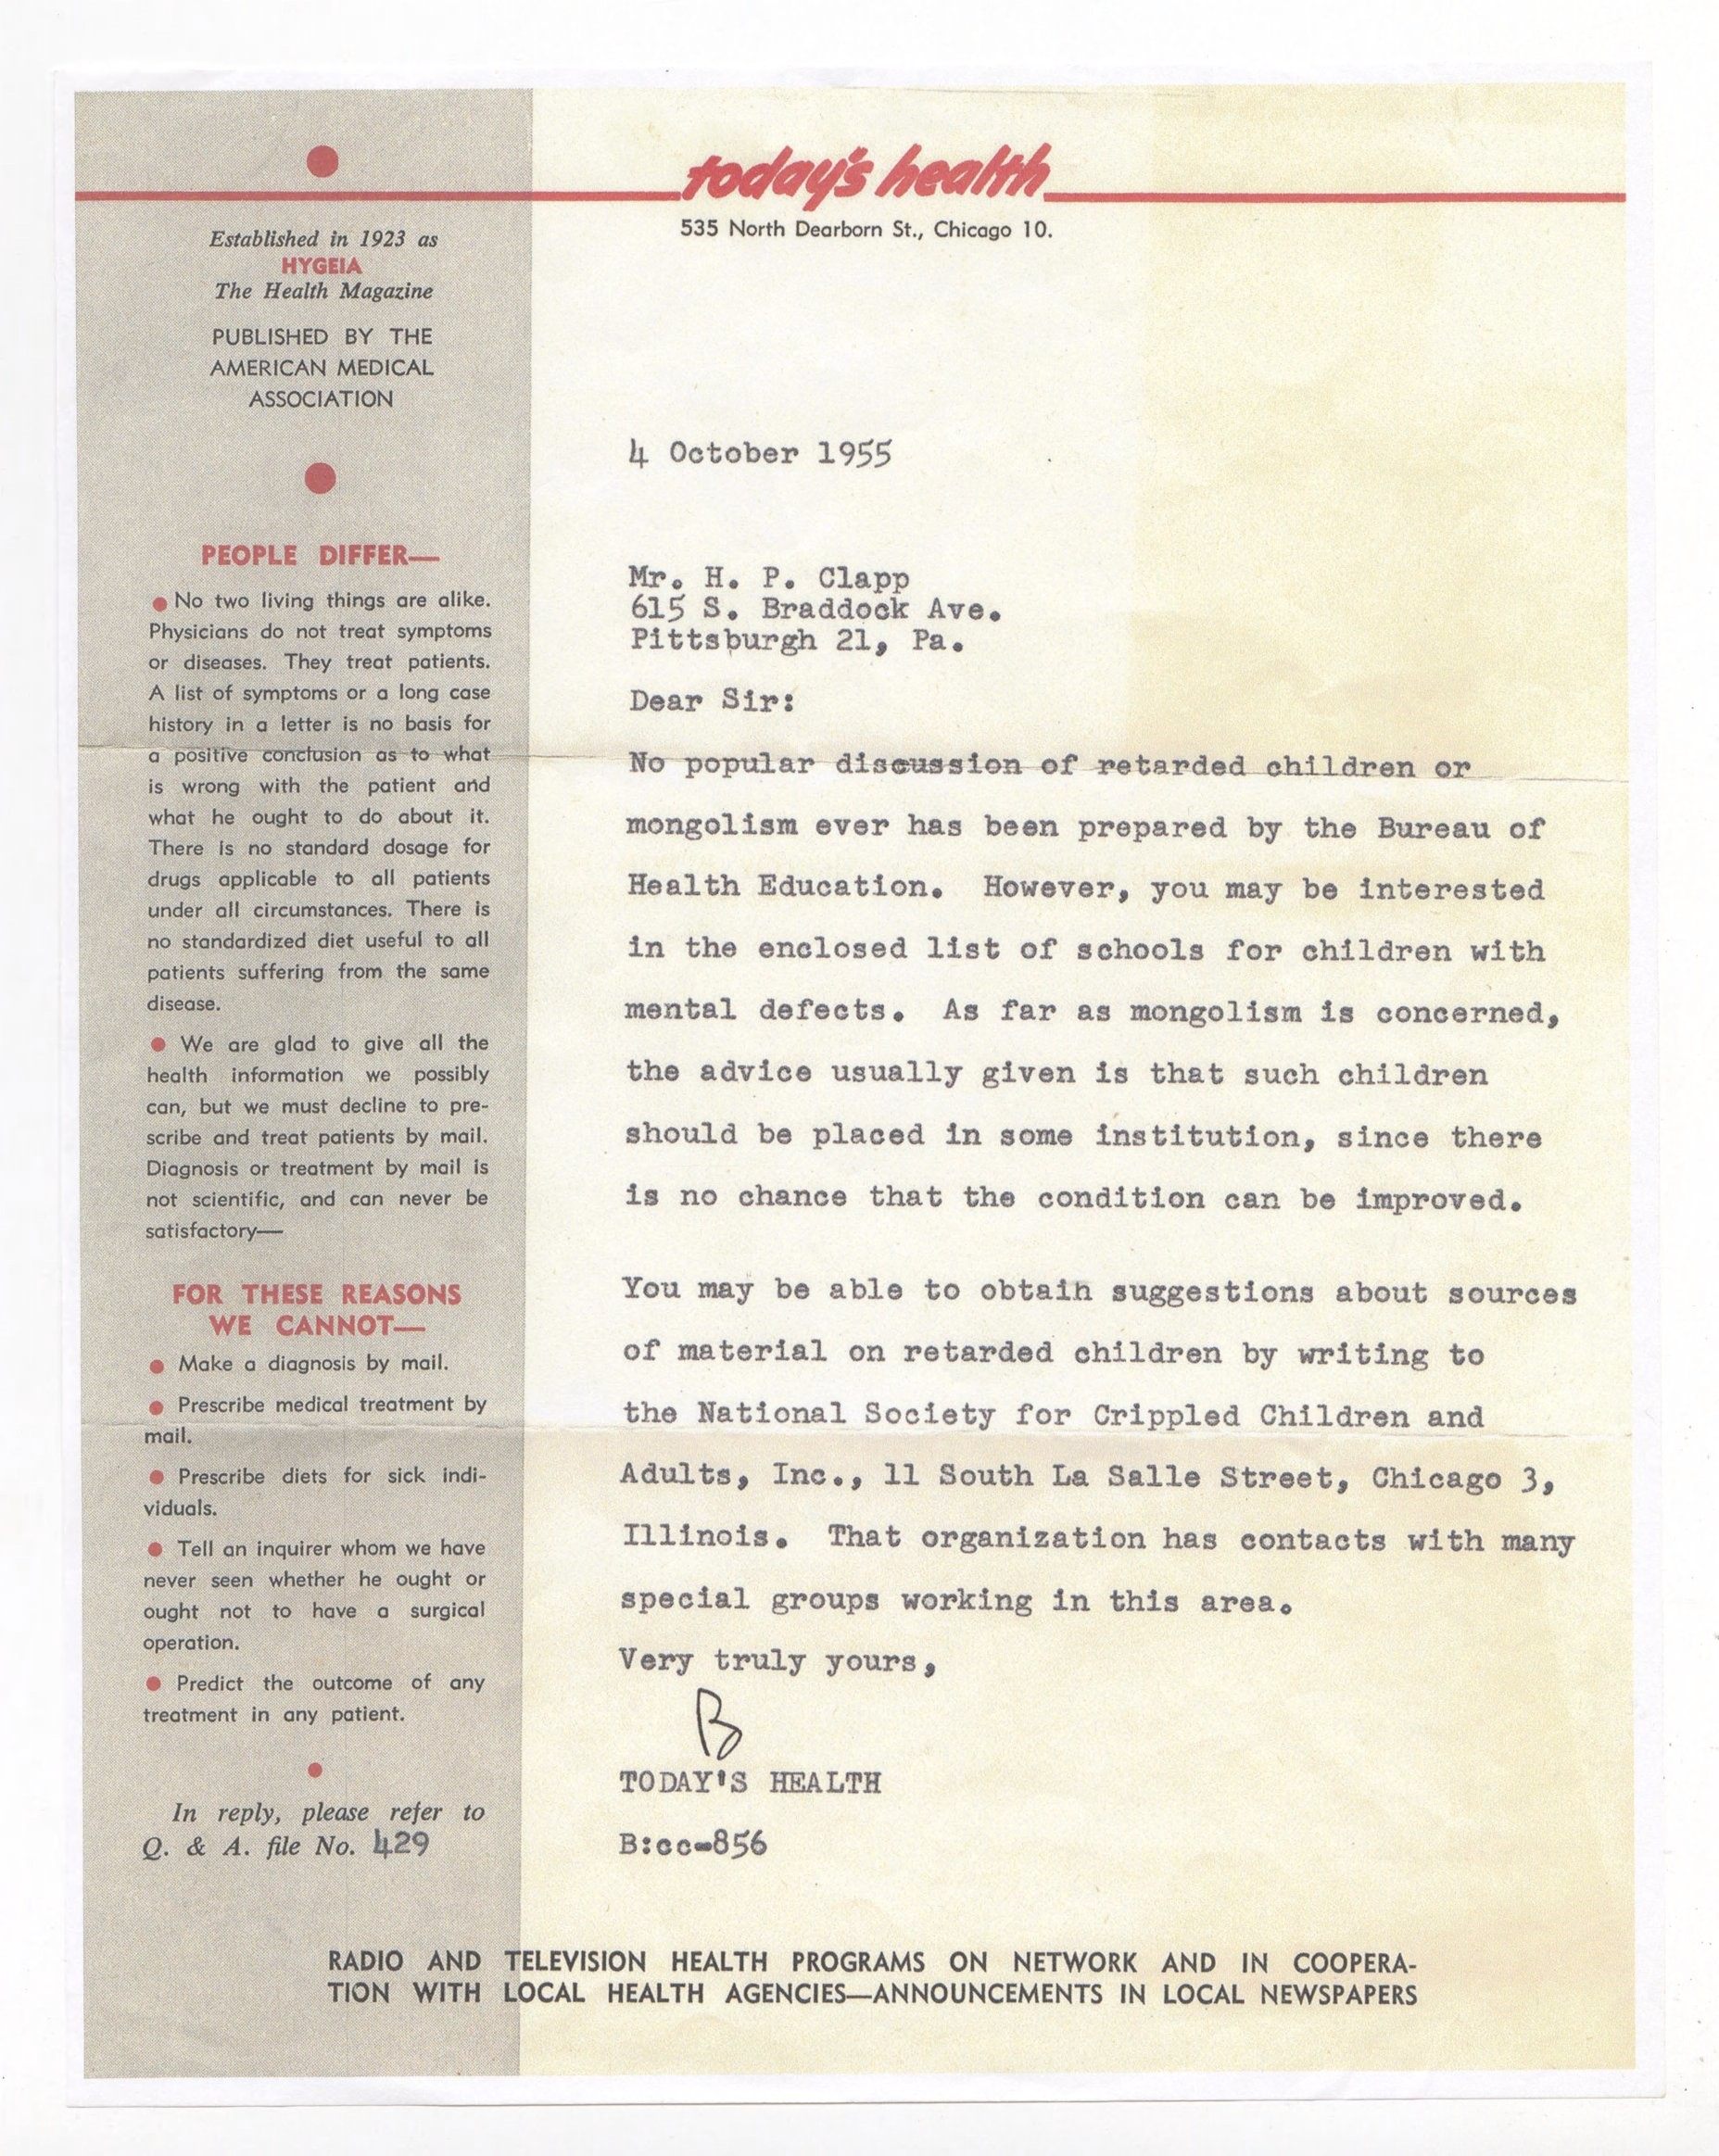 Letter from the American Medical Association reflecting an inaccurate and grim medical prognosis for children with Down syndrome in the 1950s. Citation:Patricia Clapp Papers and Photographs, MSS 1196, Detre Library and Archives, Heinz History Center.